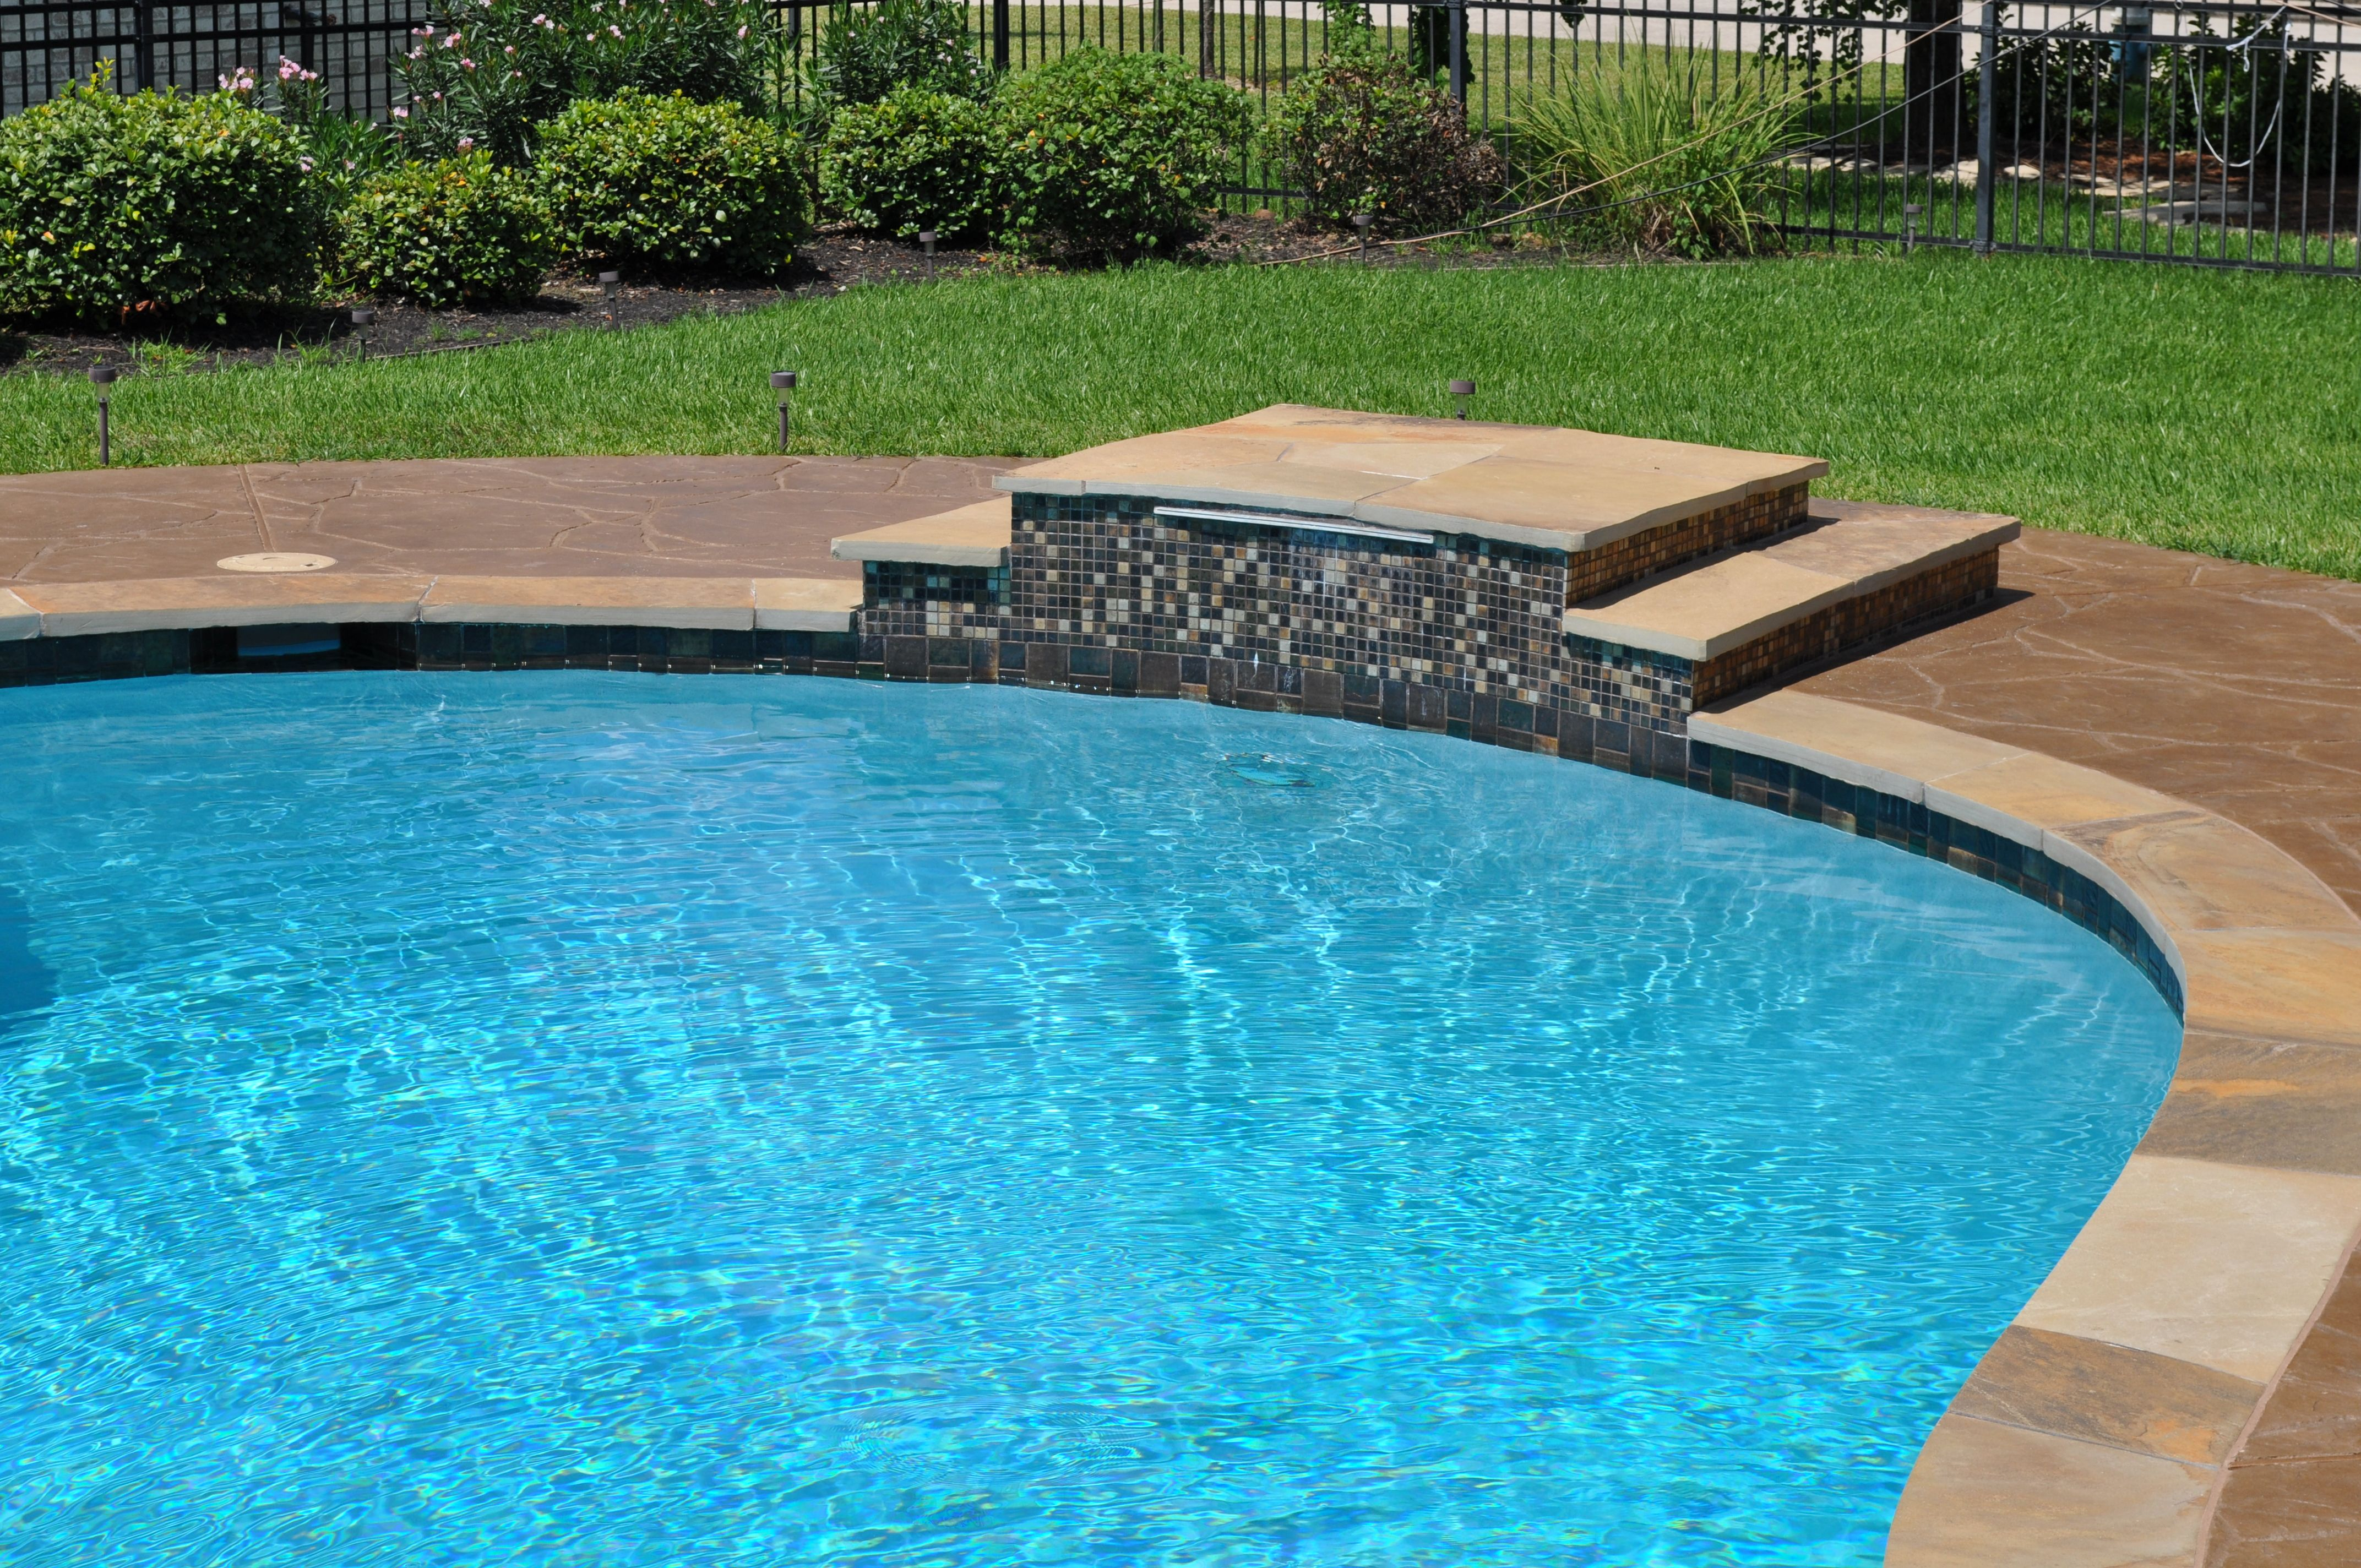 Diving Platform For The Kiddos With A Sheer Descent Pool Patio Diving Pool Swimming Pool Designs